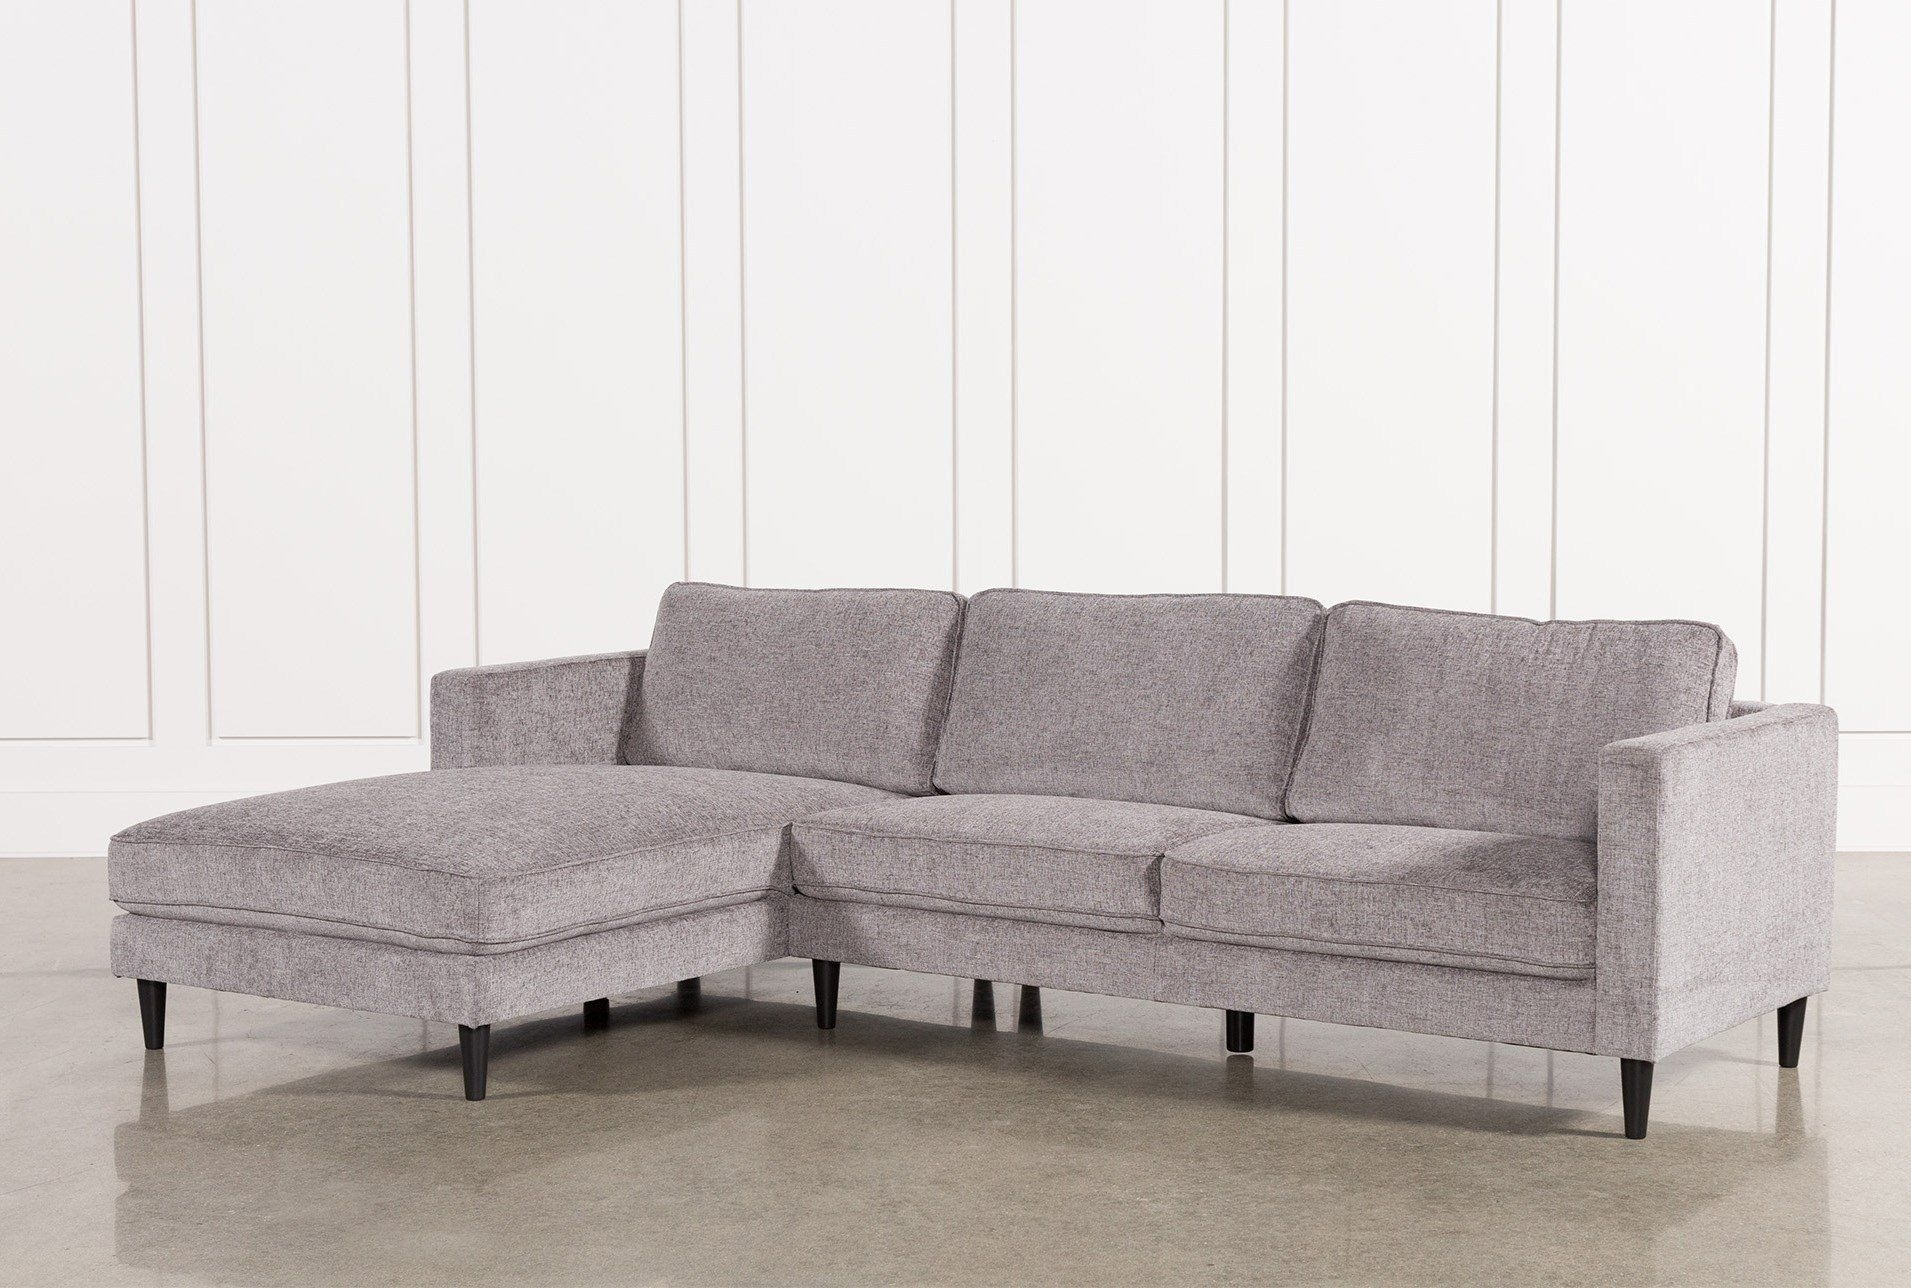 Cosmos Grey 2 Piece Sectional W/laf Chaise | Couches | Pinterest pertaining to Tatum Dark Grey 2 Piece Sectionals With Laf Chaise (Image 3 of 30)